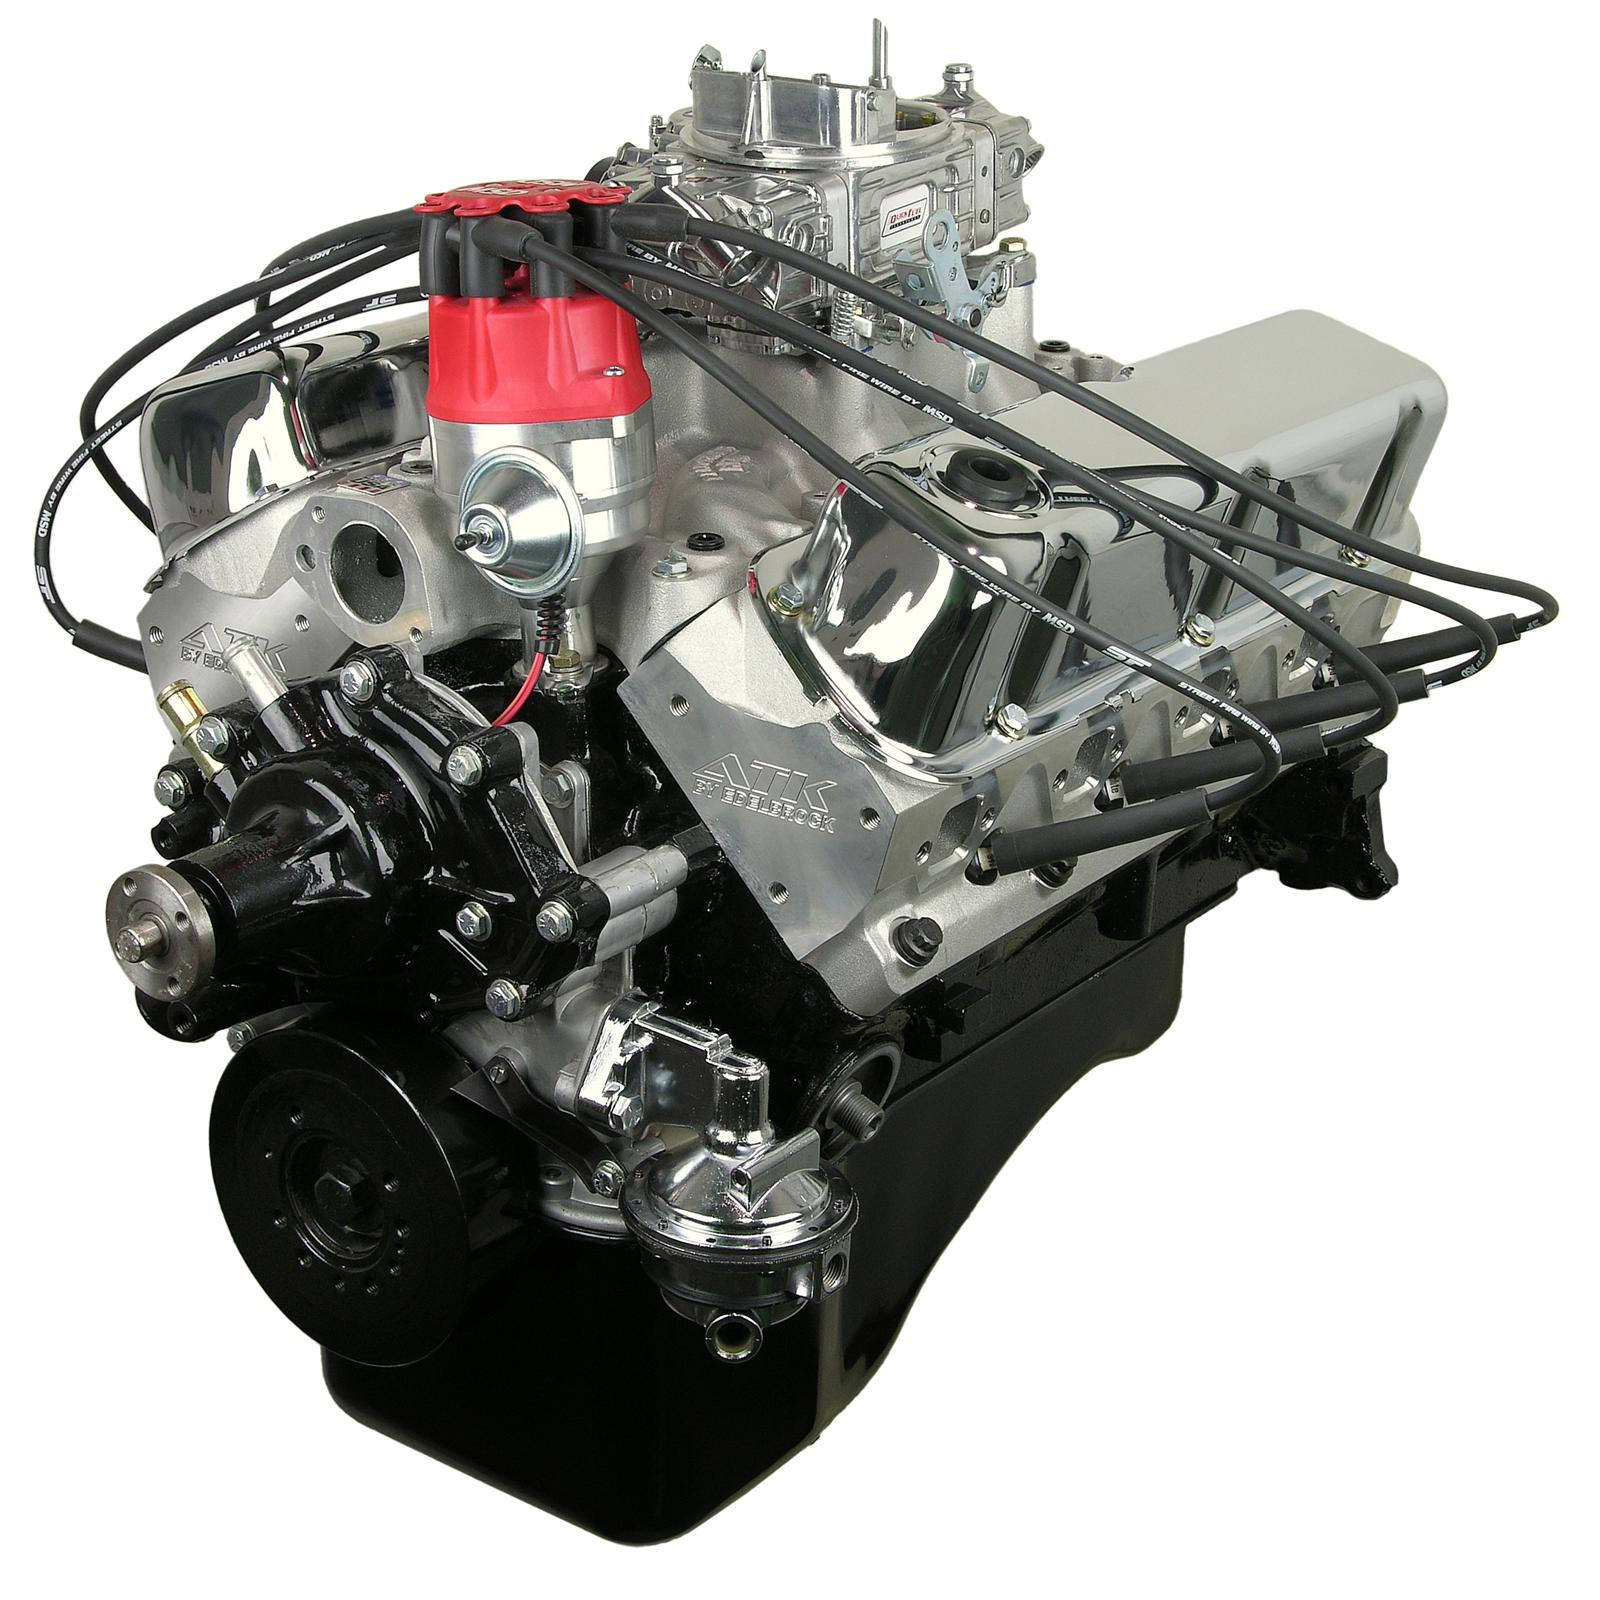 ATK High Performance Ford 351W 385 HP Stage 3 Long Block Crate Engines HP11C